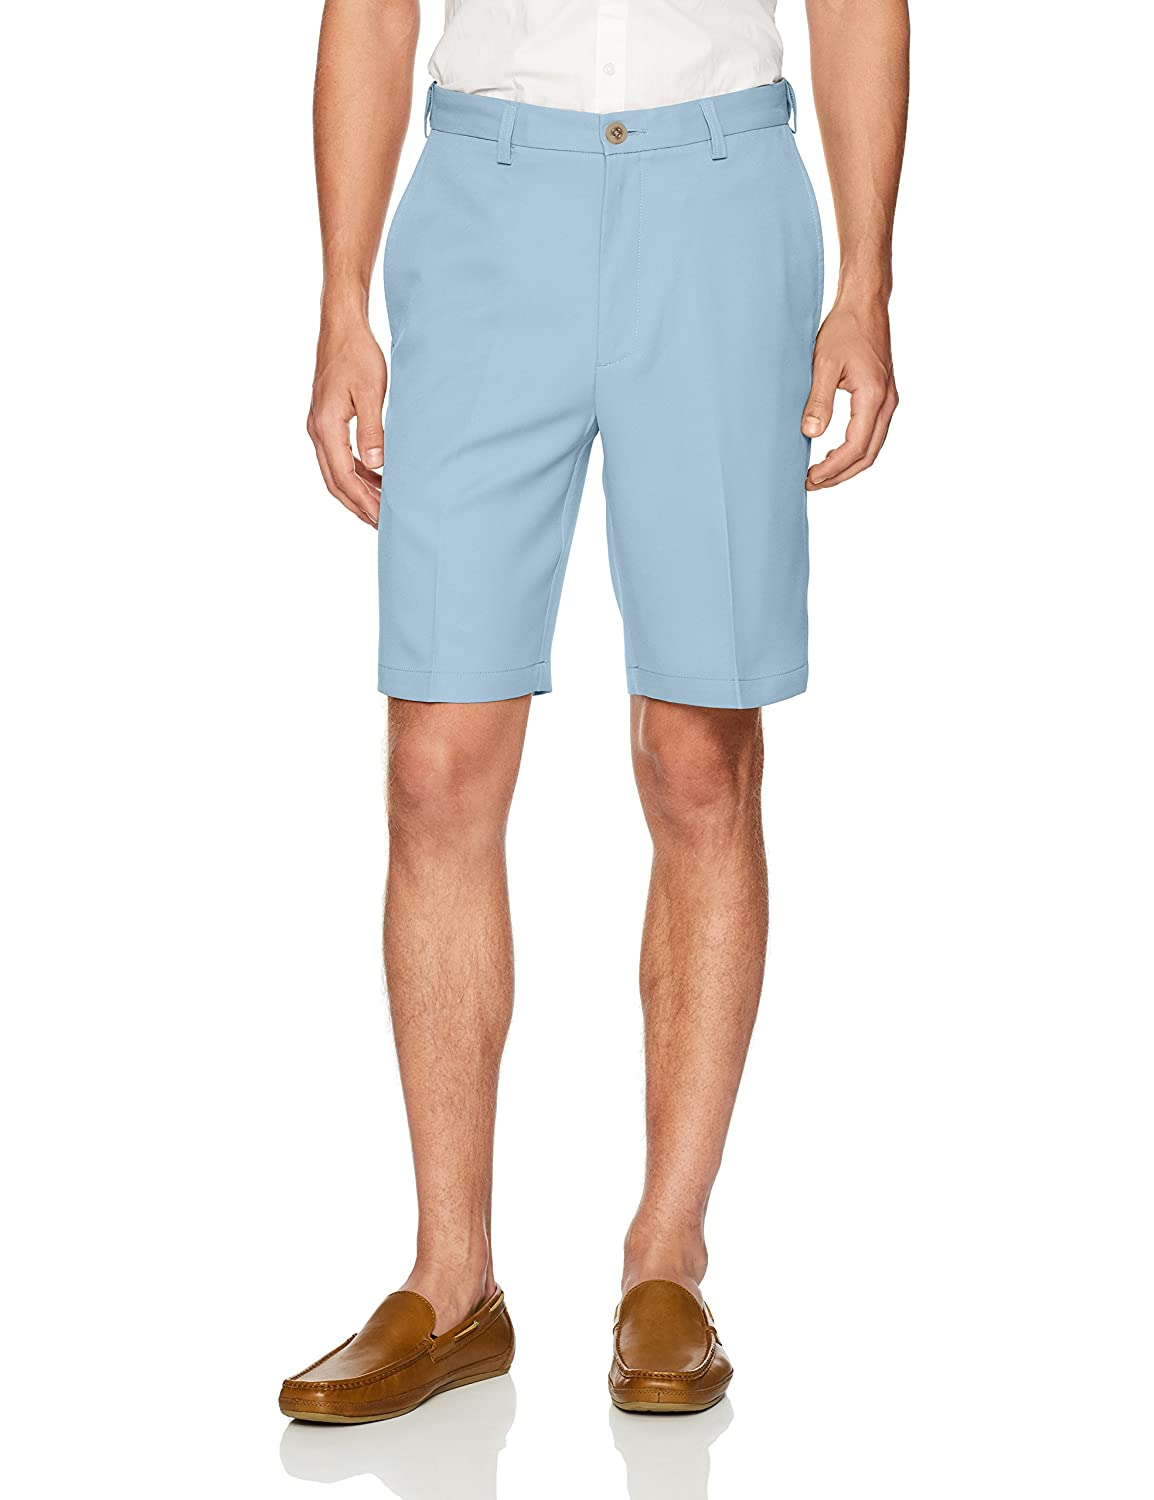 Haggar Men's Cool 18 Pro Straight Fit Stretch Solid Flat Front Short Haggar Men's Bottoms HS00438